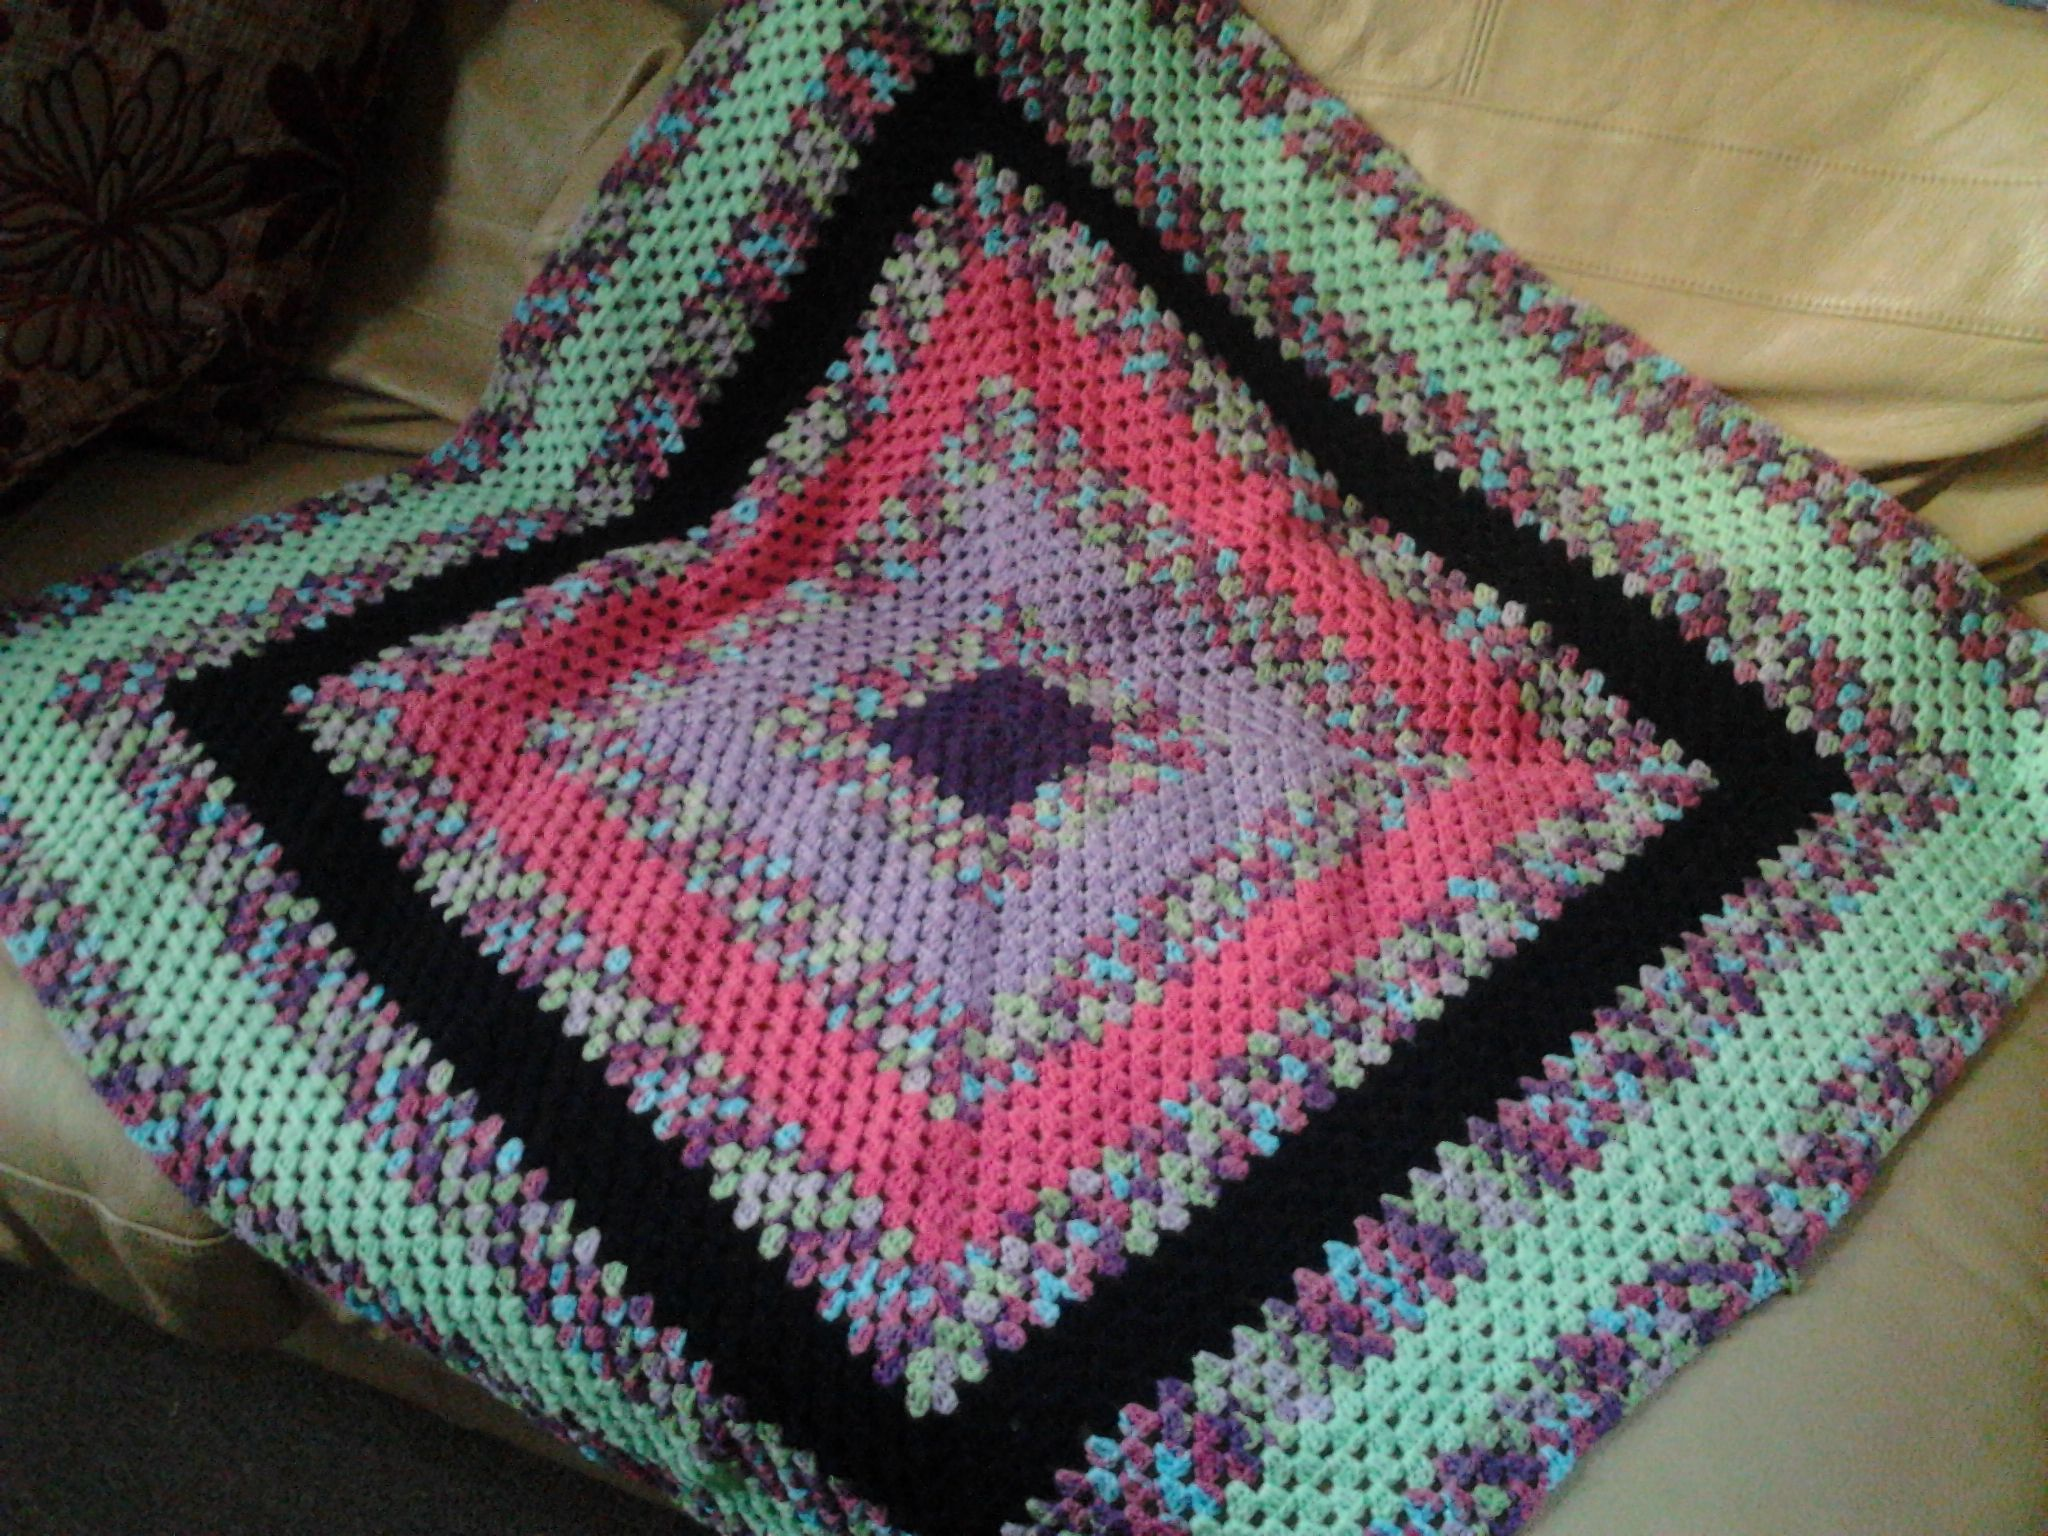 Crochet Lap Blanket : Lap blanket Crochet Crafts Pinterest